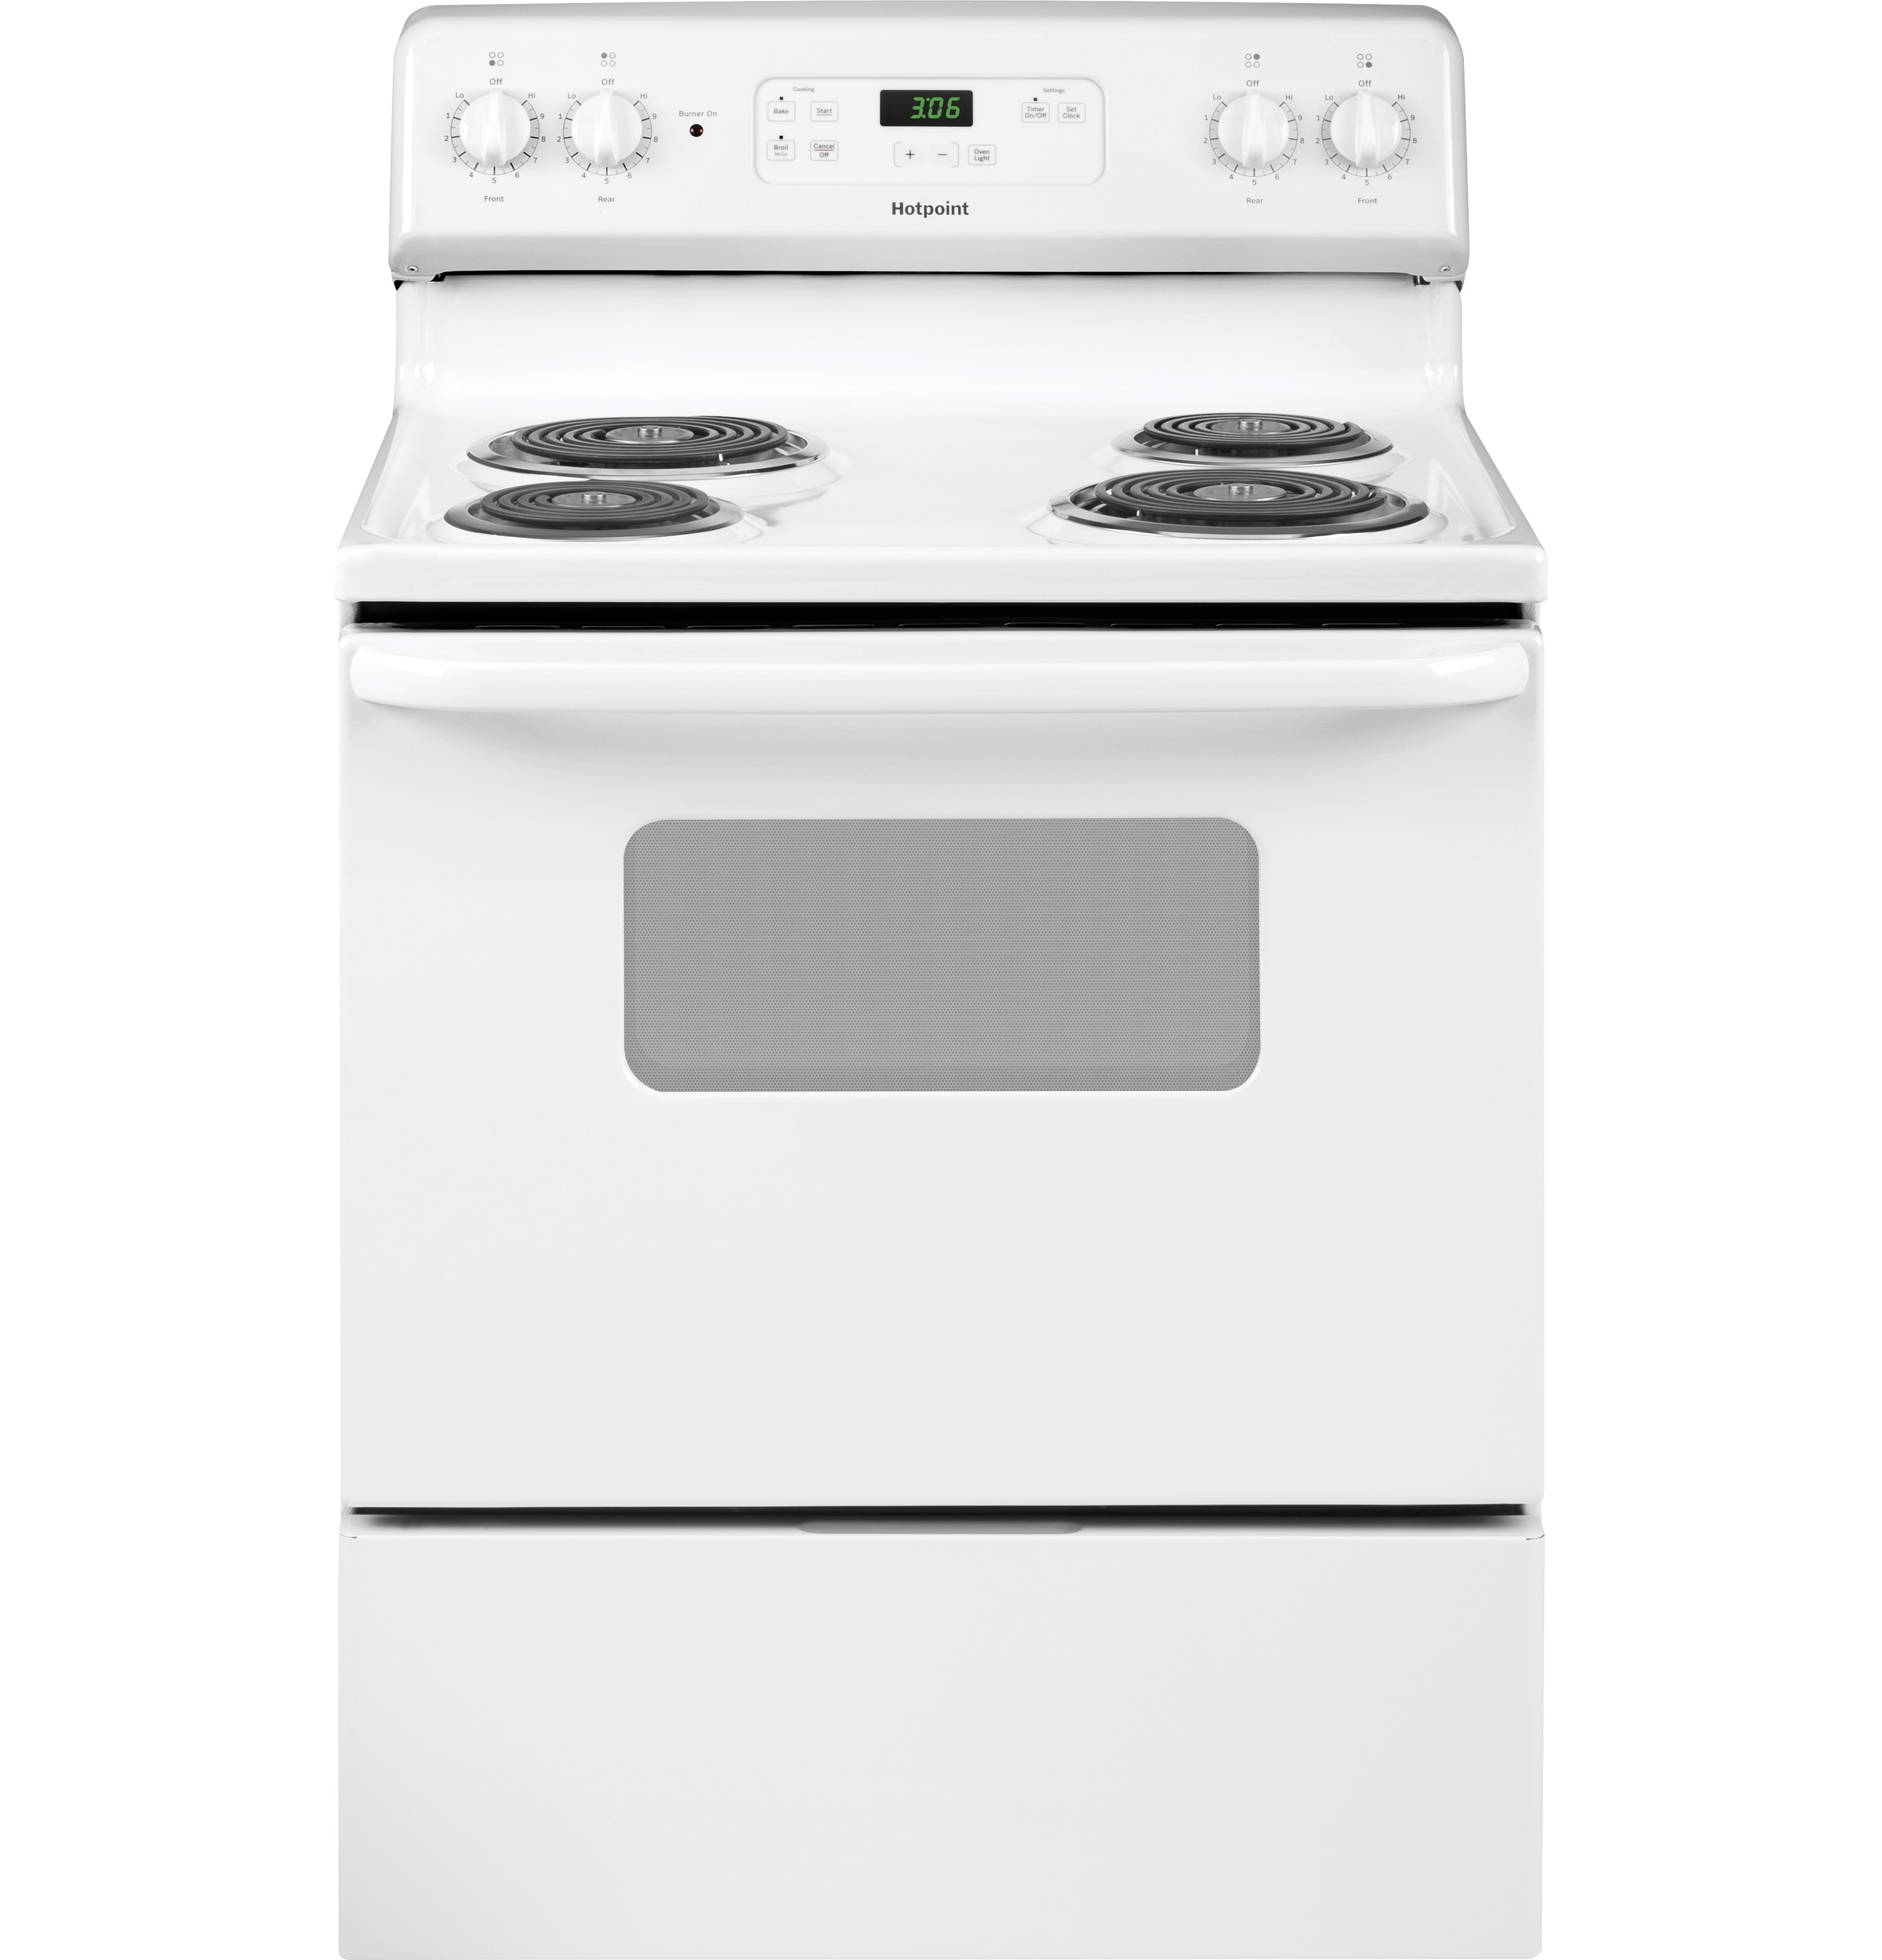 "Hotpoint Hotpoint® 30"" Free-Standing Standard Clean Electric Range"